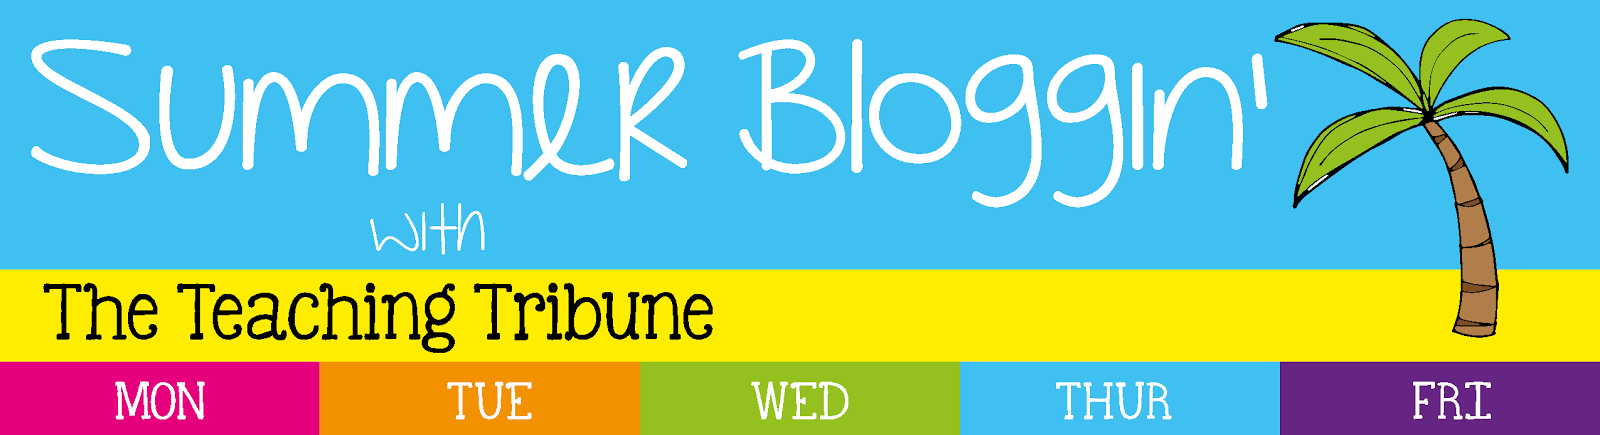 http://www.theteachingtribune.com/2014/05/summer-bloggin-with-ttt.html